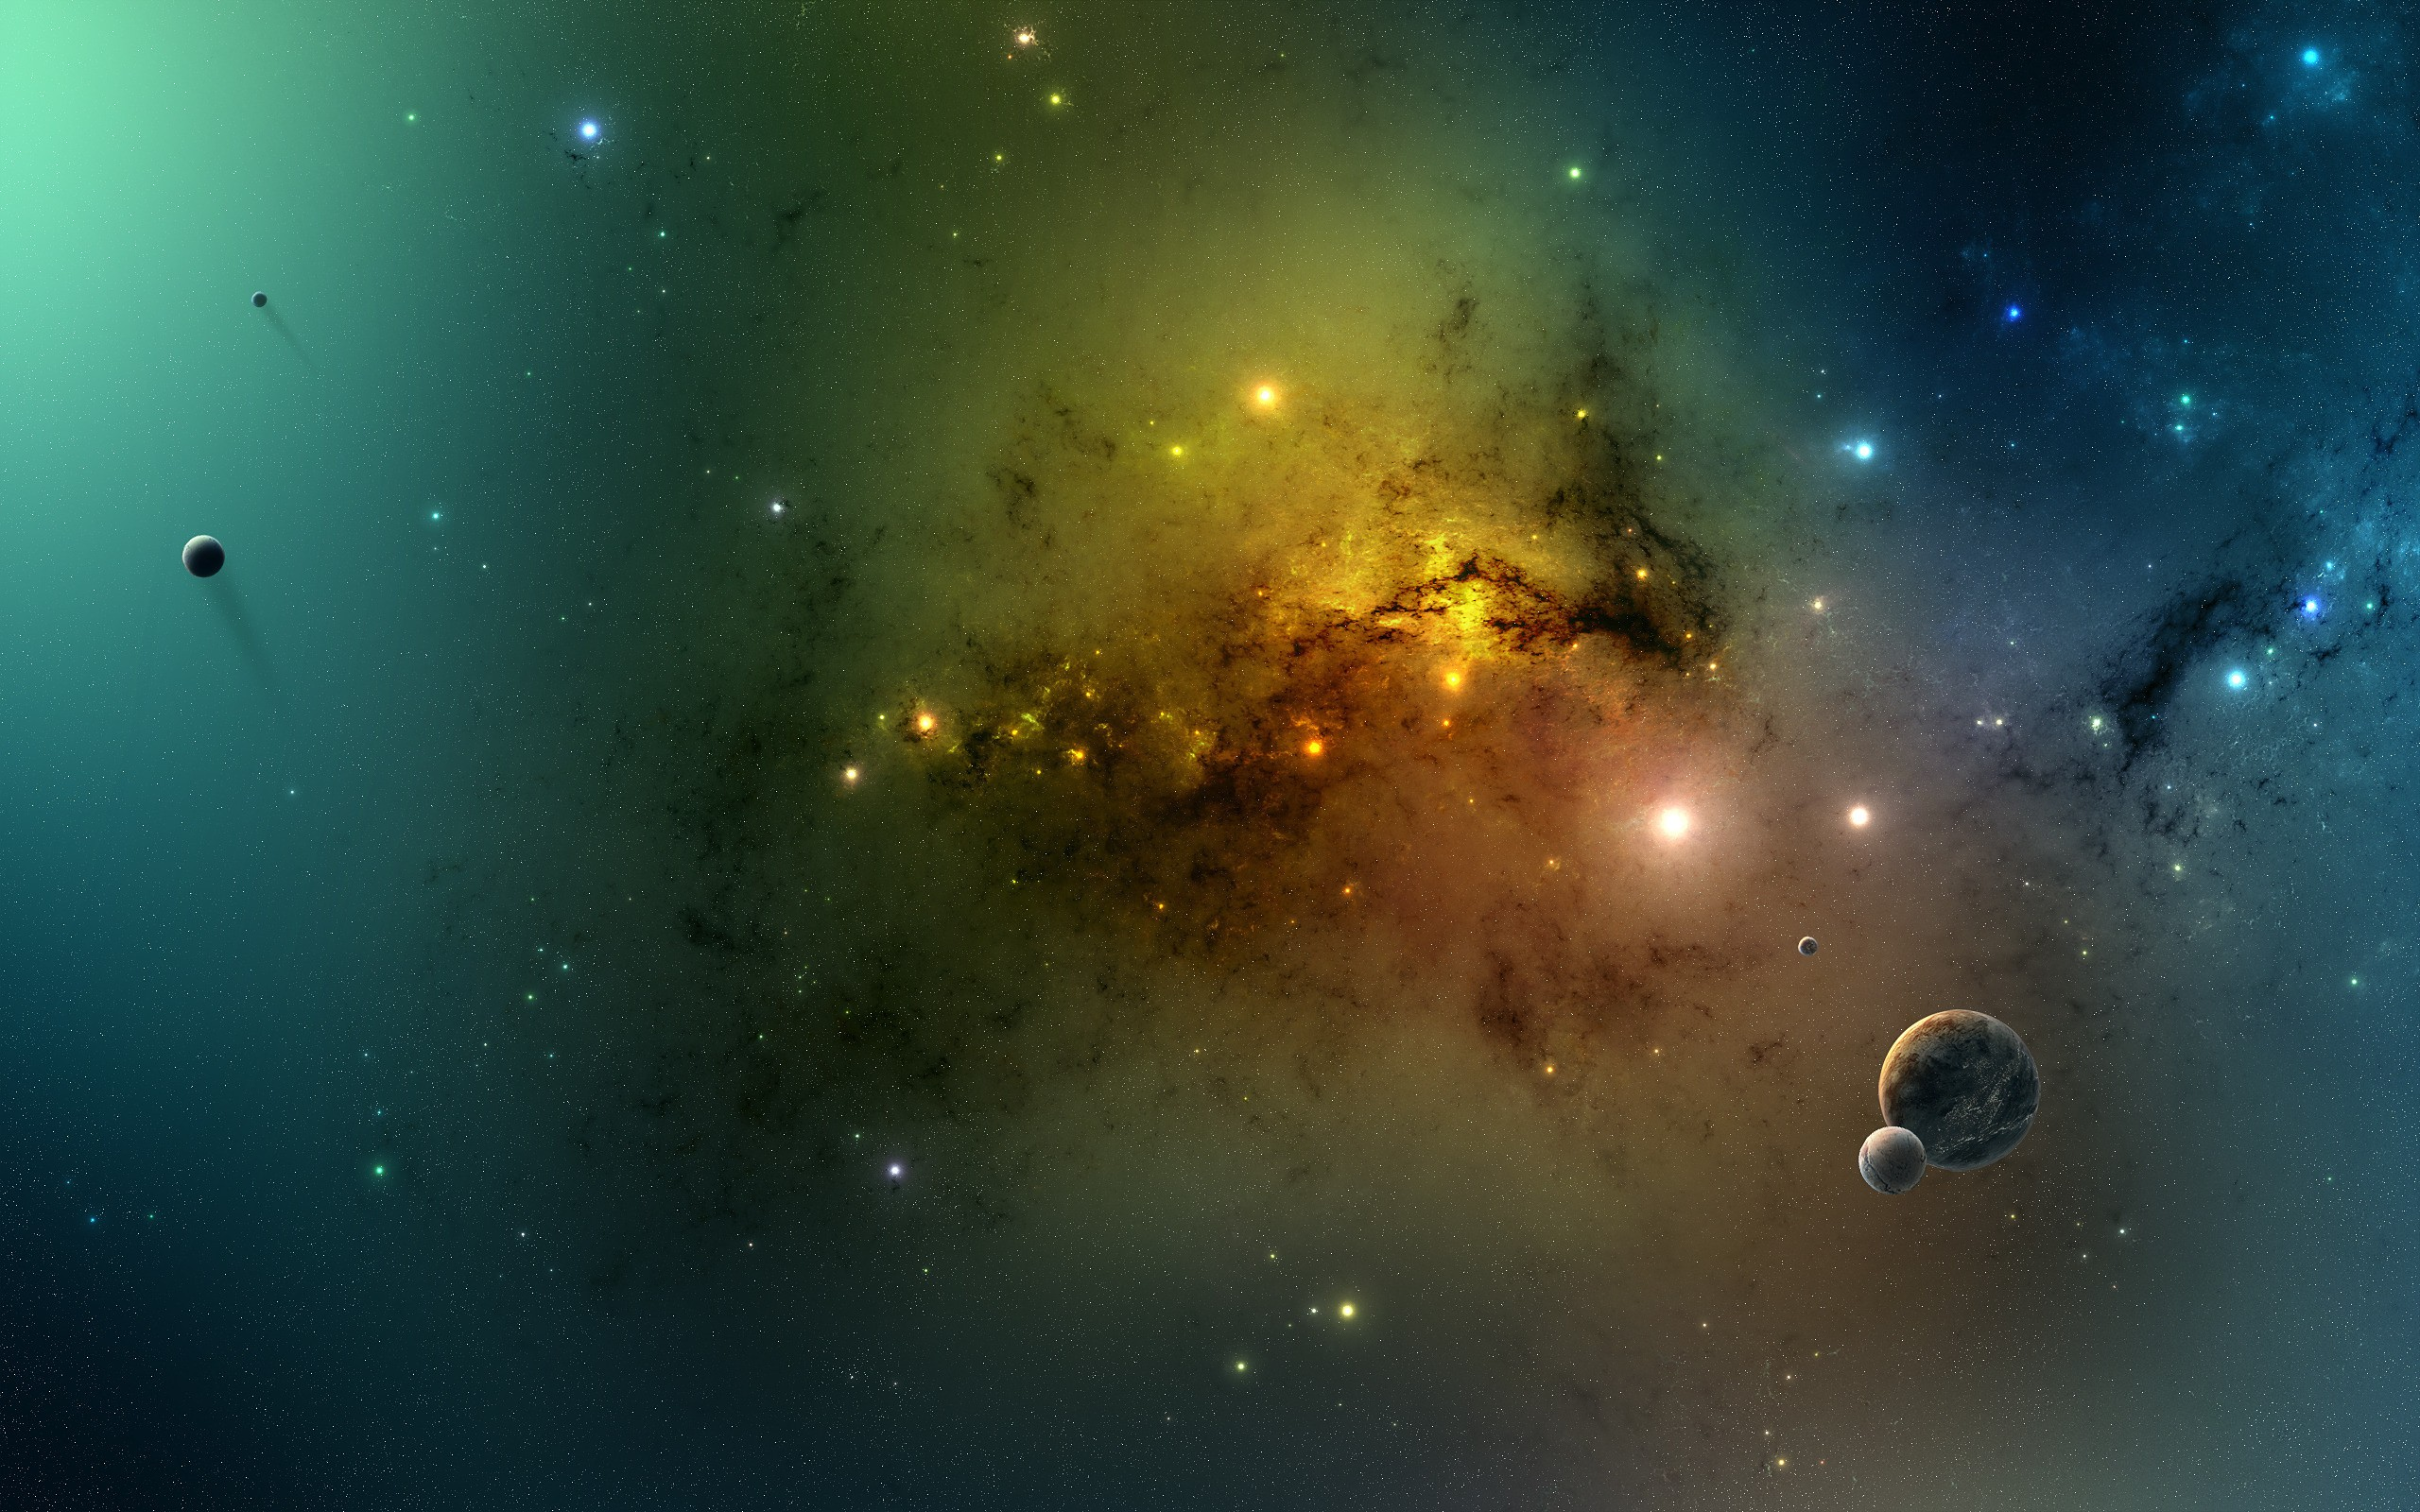 Space Hd Wallpaper Best Fl Studio Backgrounds 595700